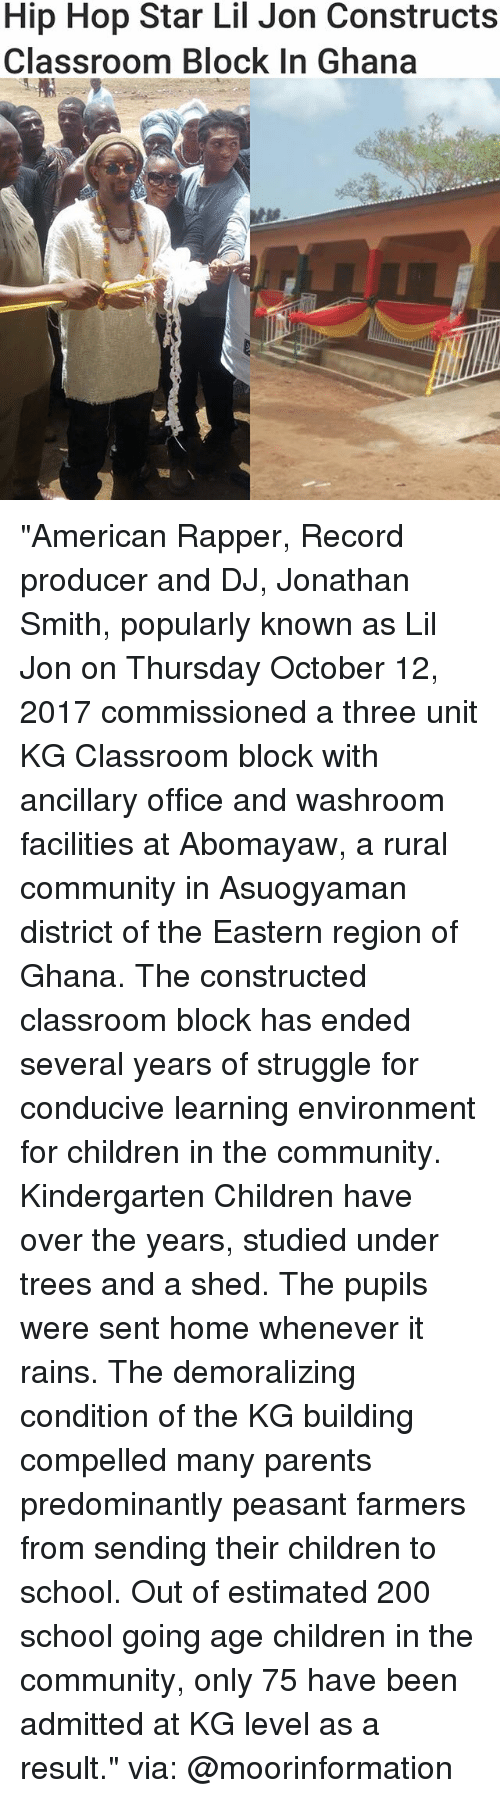 """Lil Jon: Hip Hop Star Lil Jon Constructs  Classroom BloCK In Ghana """"American Rapper, Record producer and DJ, Jonathan Smith, popularly known as Lil Jon on Thursday October 12, 2017 commissioned a three unit KG Classroom block with ancillary office and washroom facilities at Abomayaw, a rural community in Asuogyaman district of the Eastern region of Ghana. The constructed classroom block has ended several years of struggle for conducive learning environment for children in the community. Kindergarten Children have over the years, studied under trees and a shed. The pupils were sent home whenever it rains. The demoralizing condition of the KG building compelled many parents predominantly peasant farmers from sending their children to school. Out of estimated 200 school going age children in the community, only 75 have been admitted at KG level as a result."""" via: @moorinformation"""